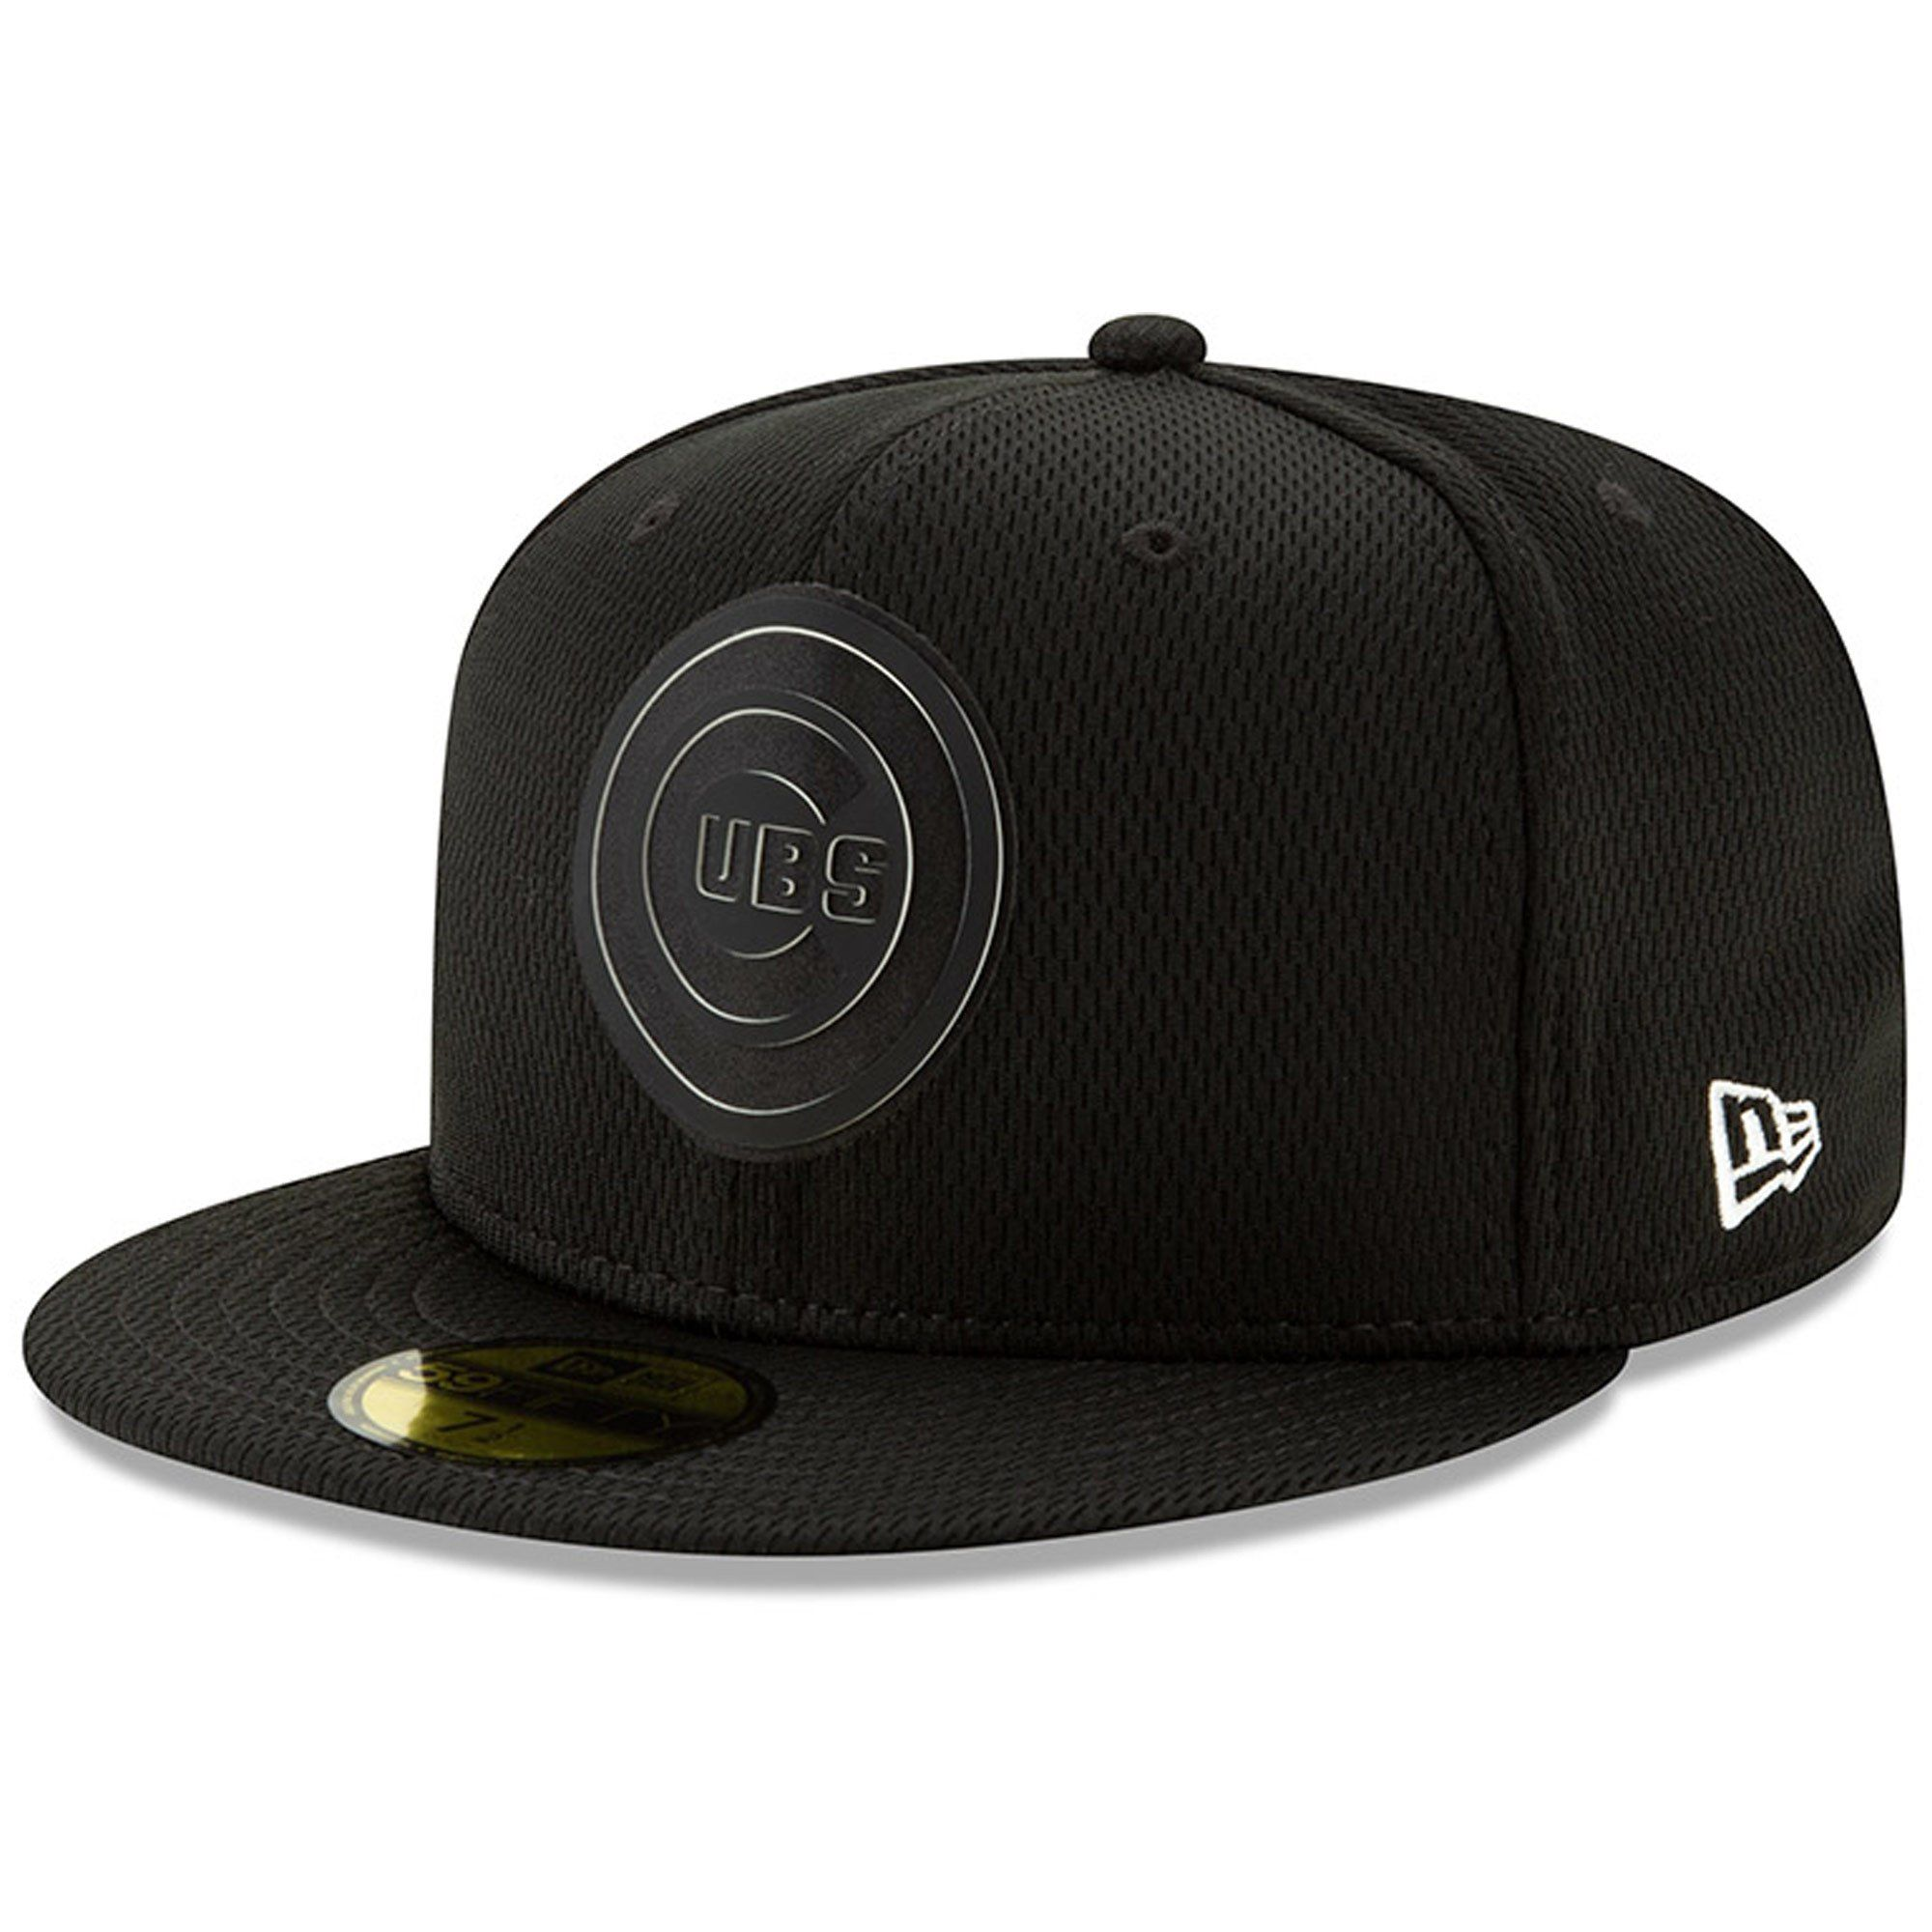 timeless design 93357 38bbd Men s Chicago Cubs New Era Black Clubhouse Collection 59FIFTY Fitted Hat,  Your Price   35.99